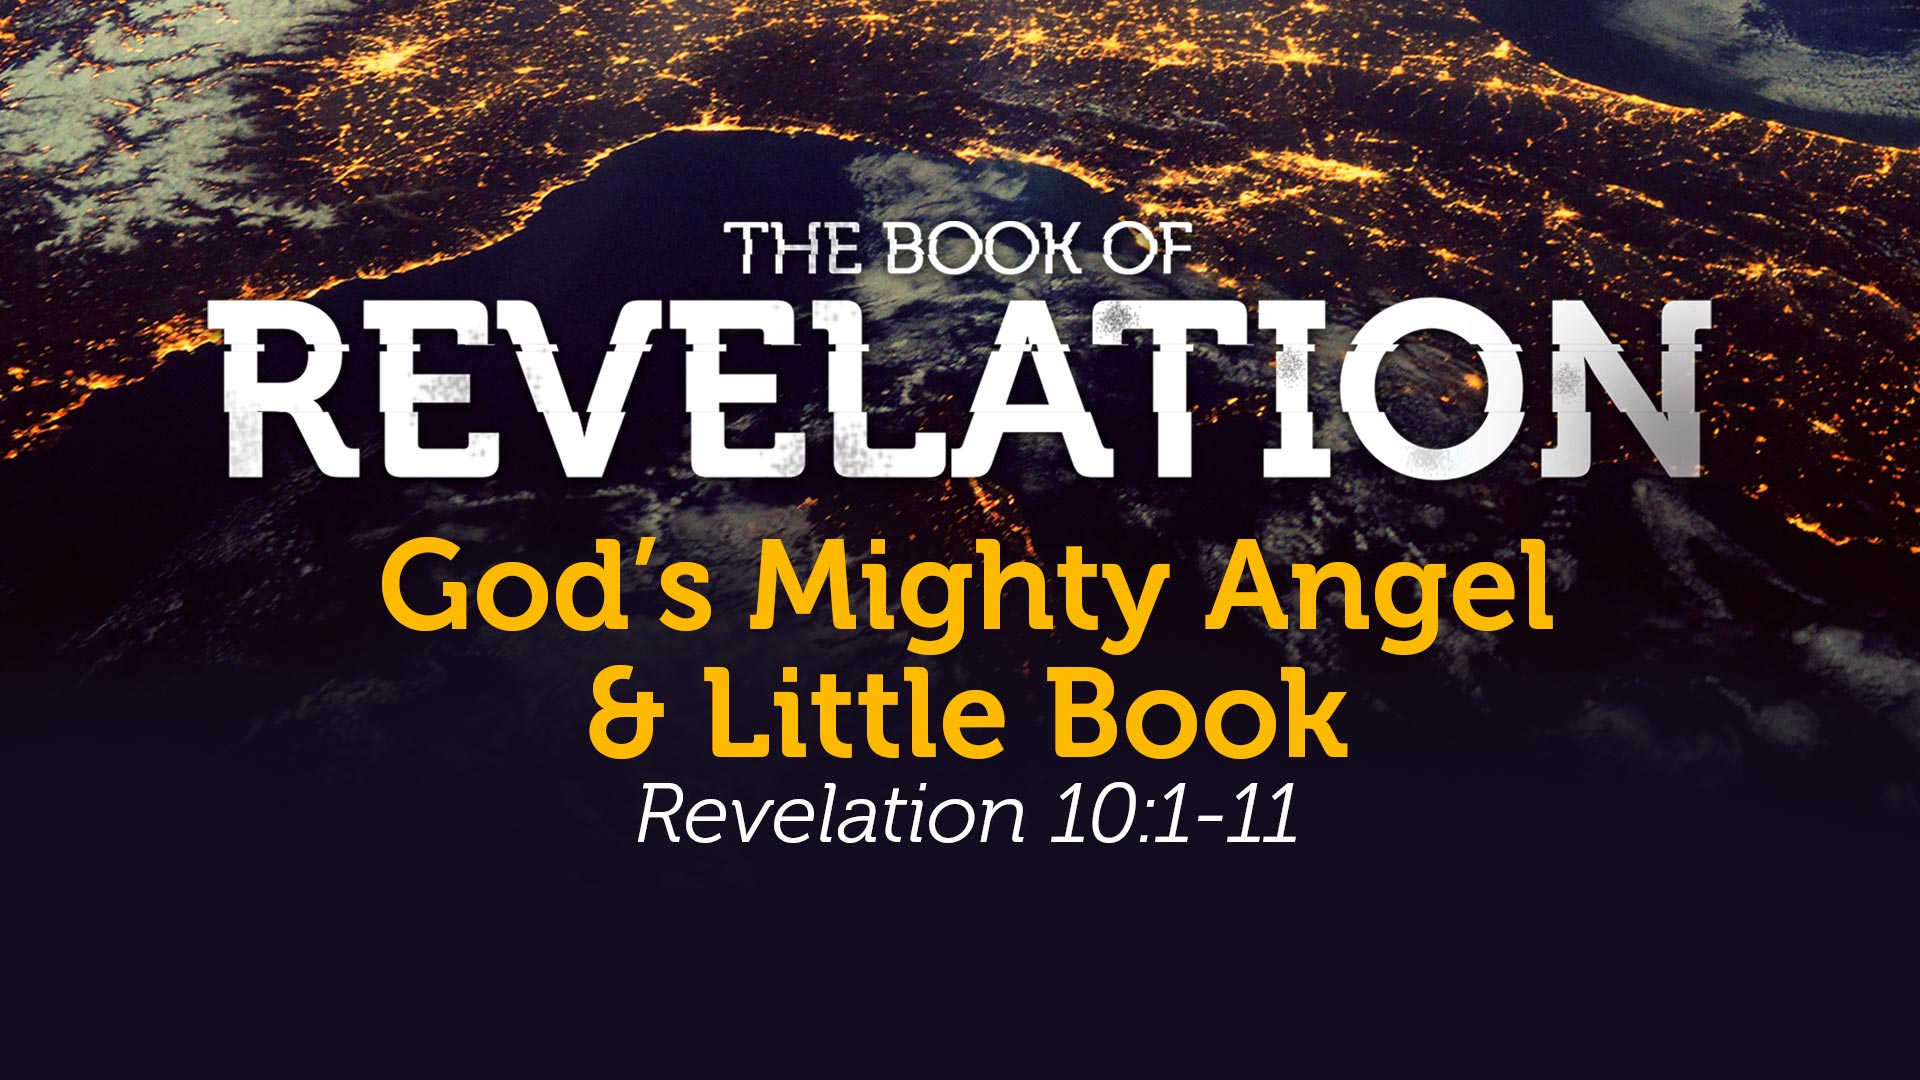 God's Mighty Angel & Little Book